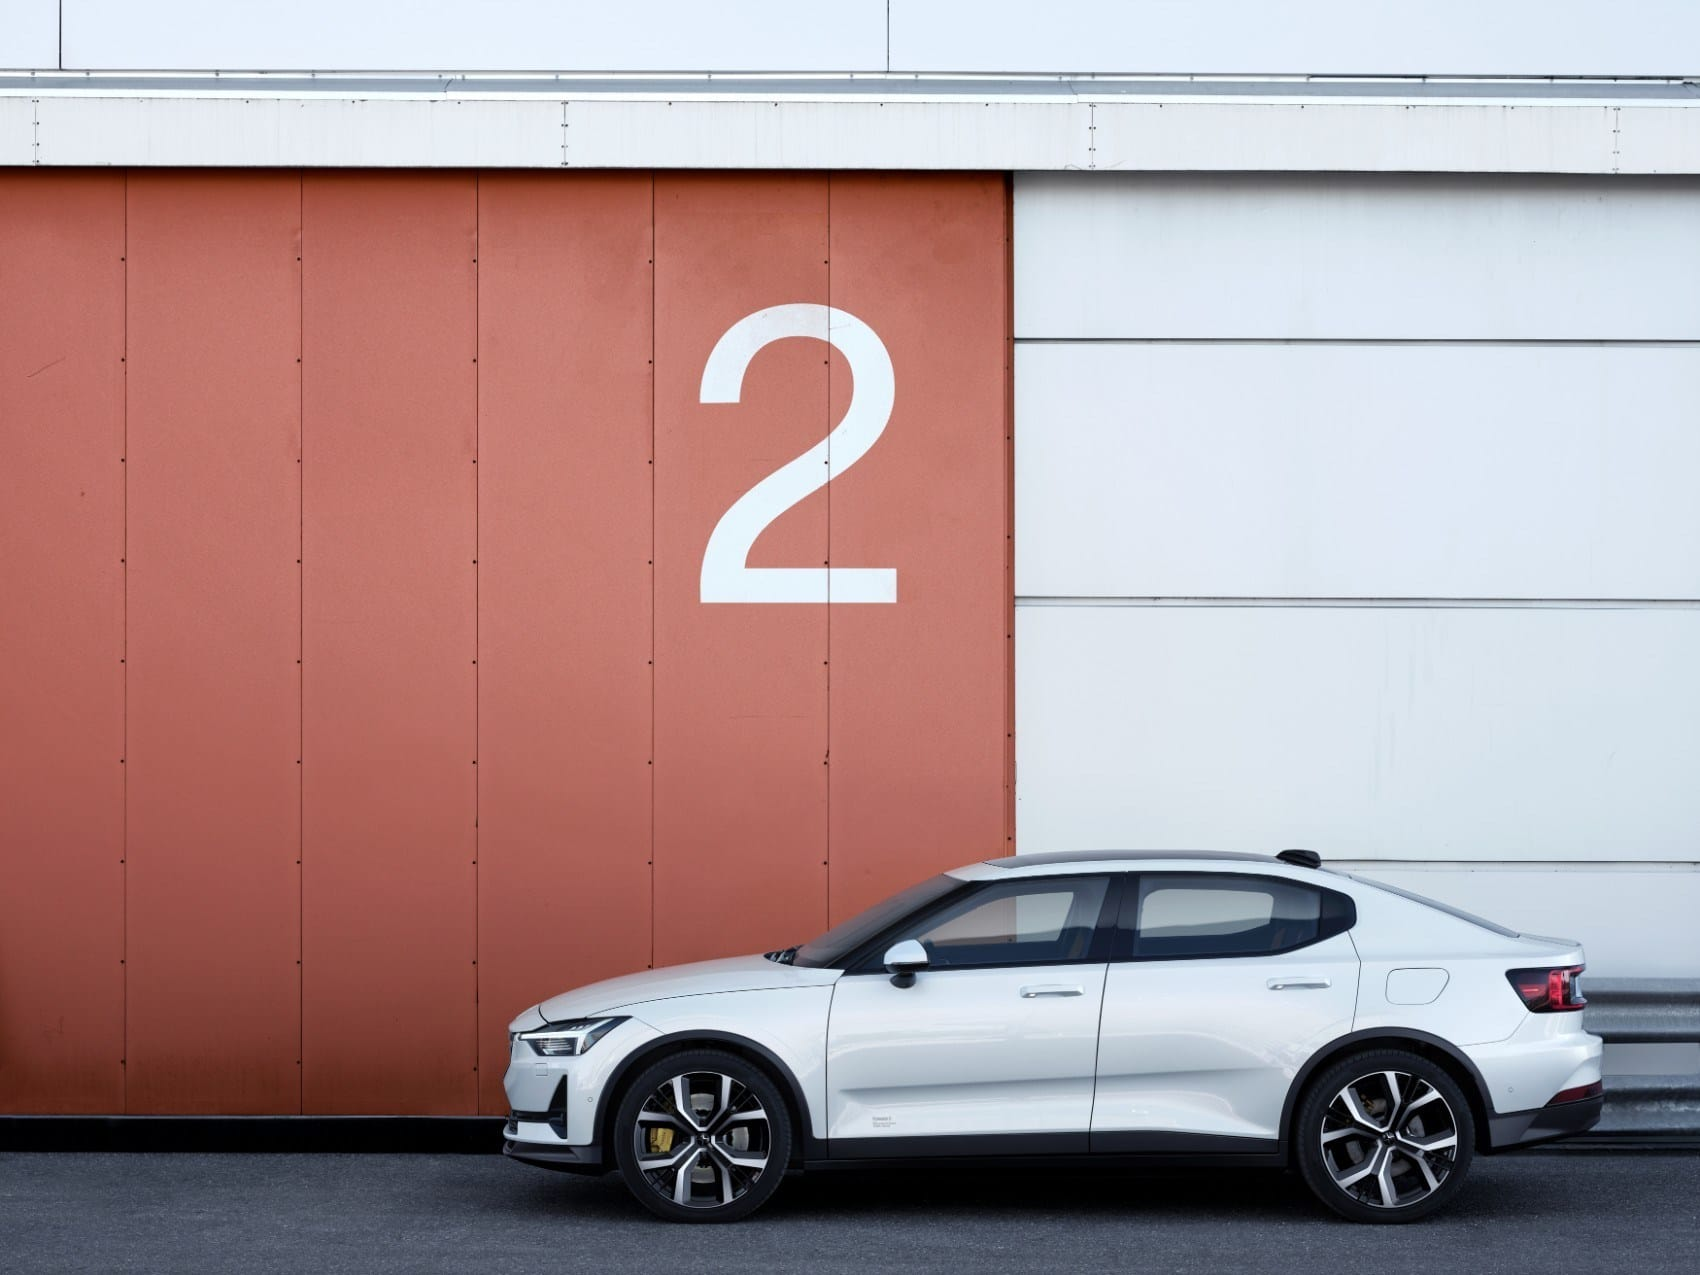 New Polestar 2 revealed as sub-£35k Tesla Model 3 rival